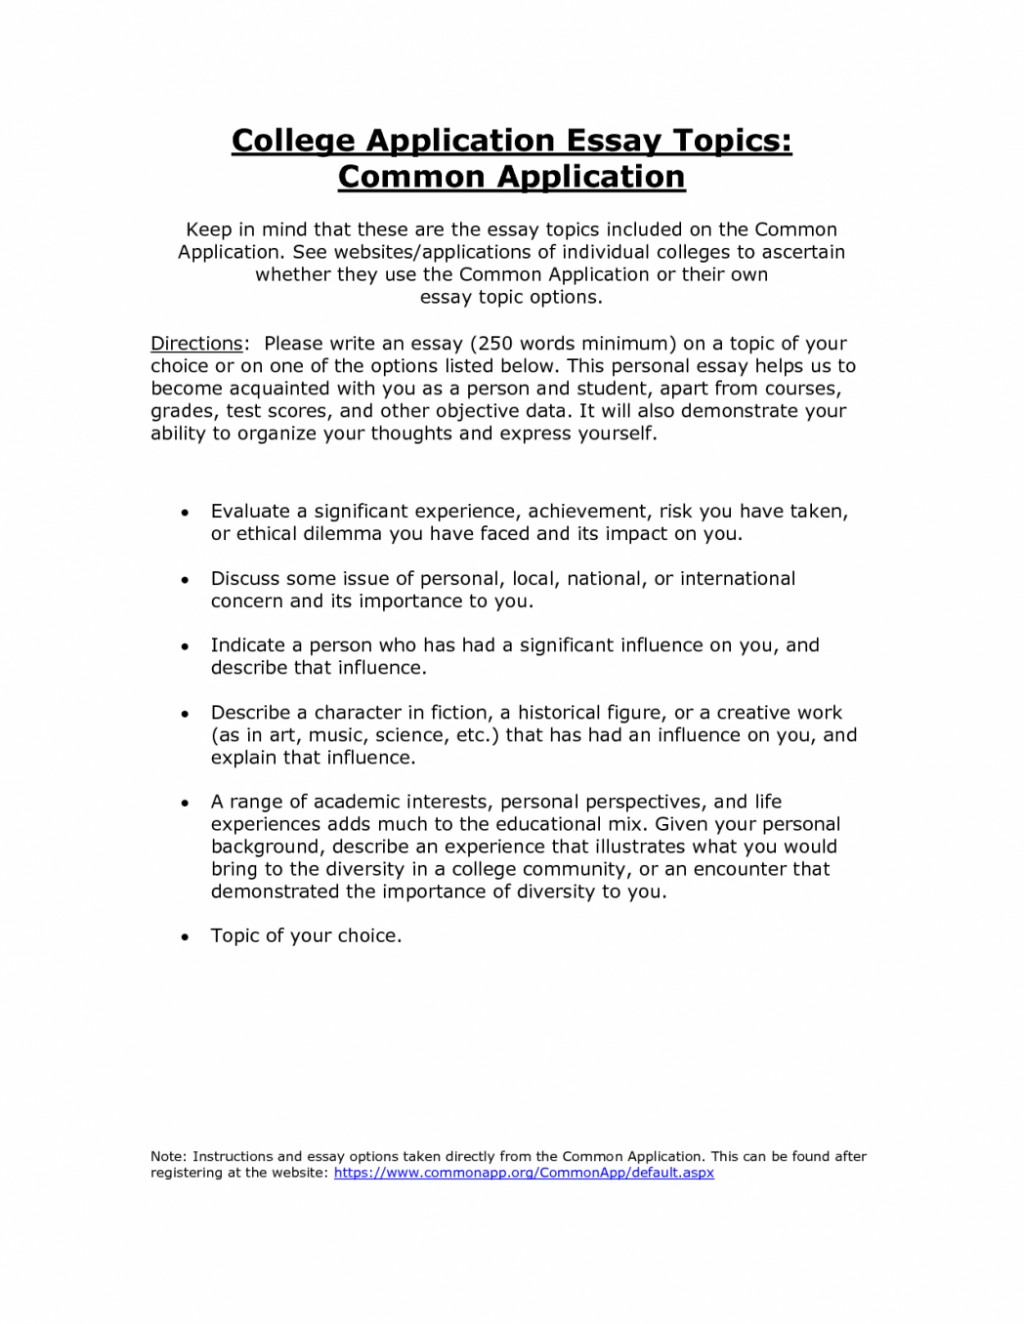 005 College Application Essay Questions Vatoz Atozdevelopment Co Jianbochencom L Topics Common App Prompts 1048x1356 Staggering 2020 2017-18 Large